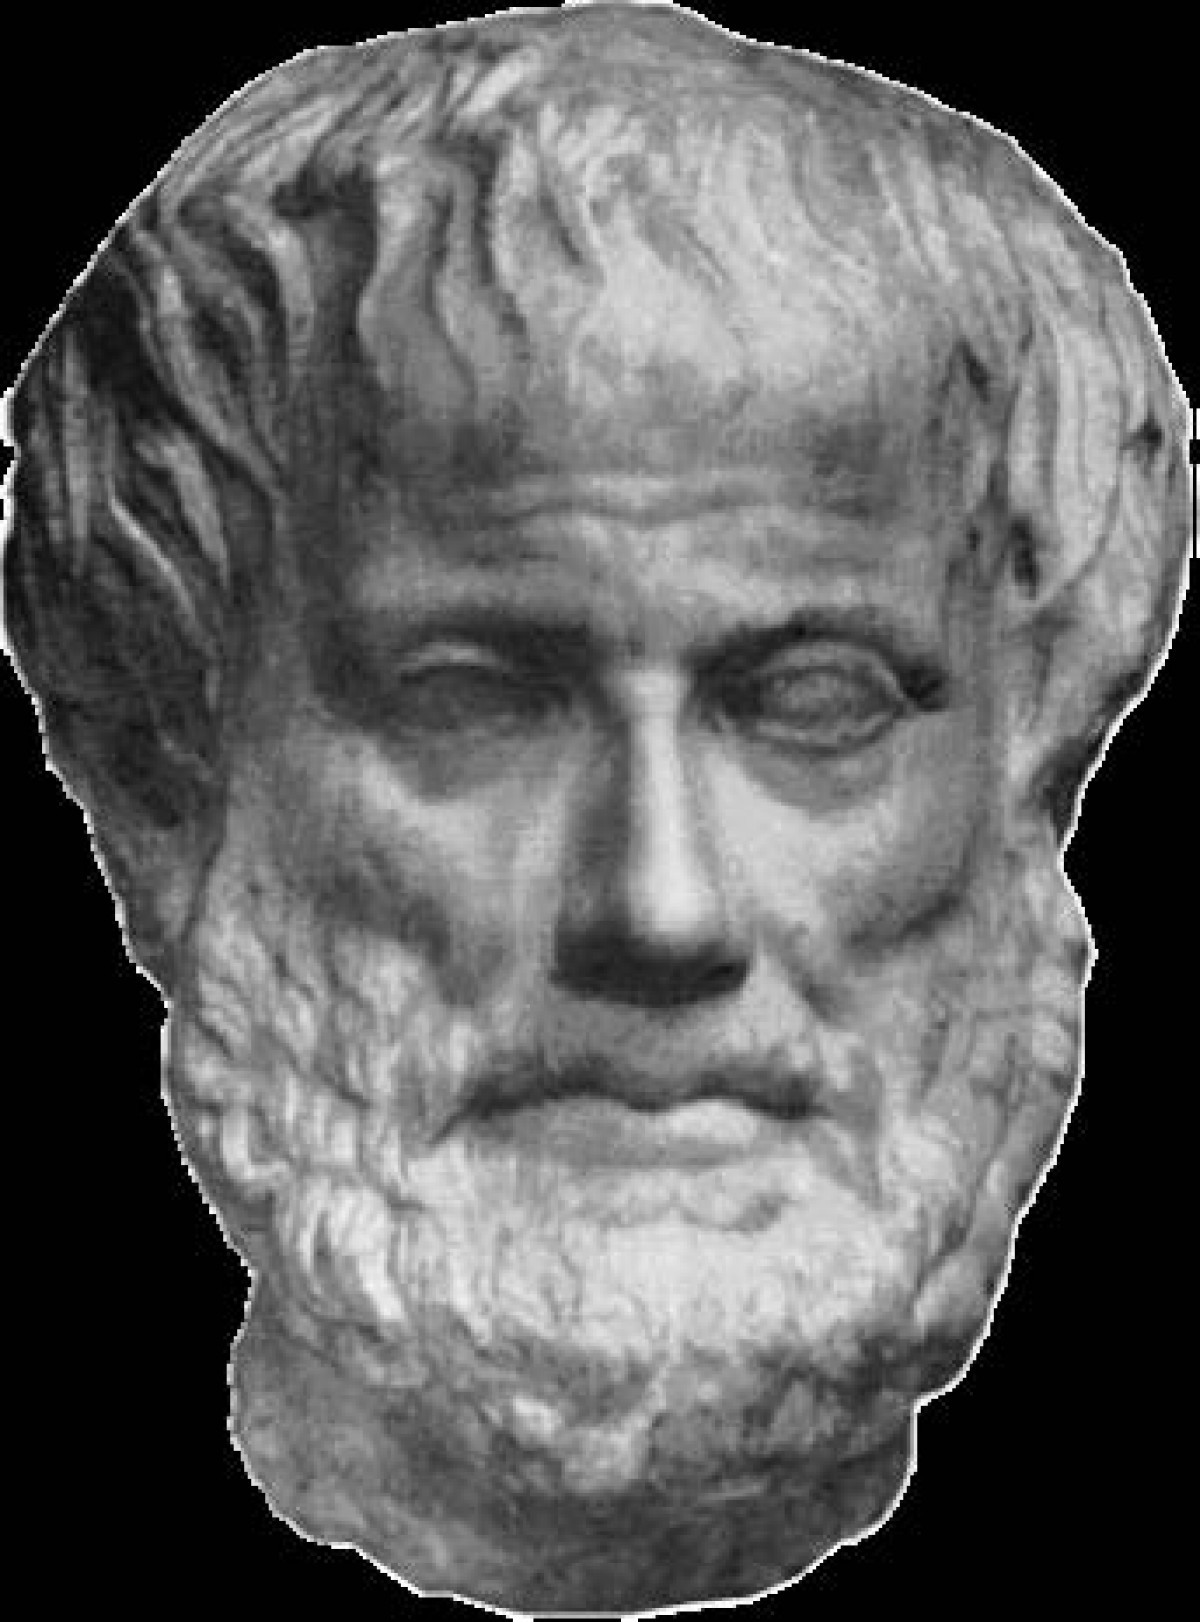 the early life and times of ancient greek philosopher Ancient greek philosophy  classical (or early) greek philosophy focused on the role of reason and inquiry in many ways it paved the way both to modern science and to modern philosophy.